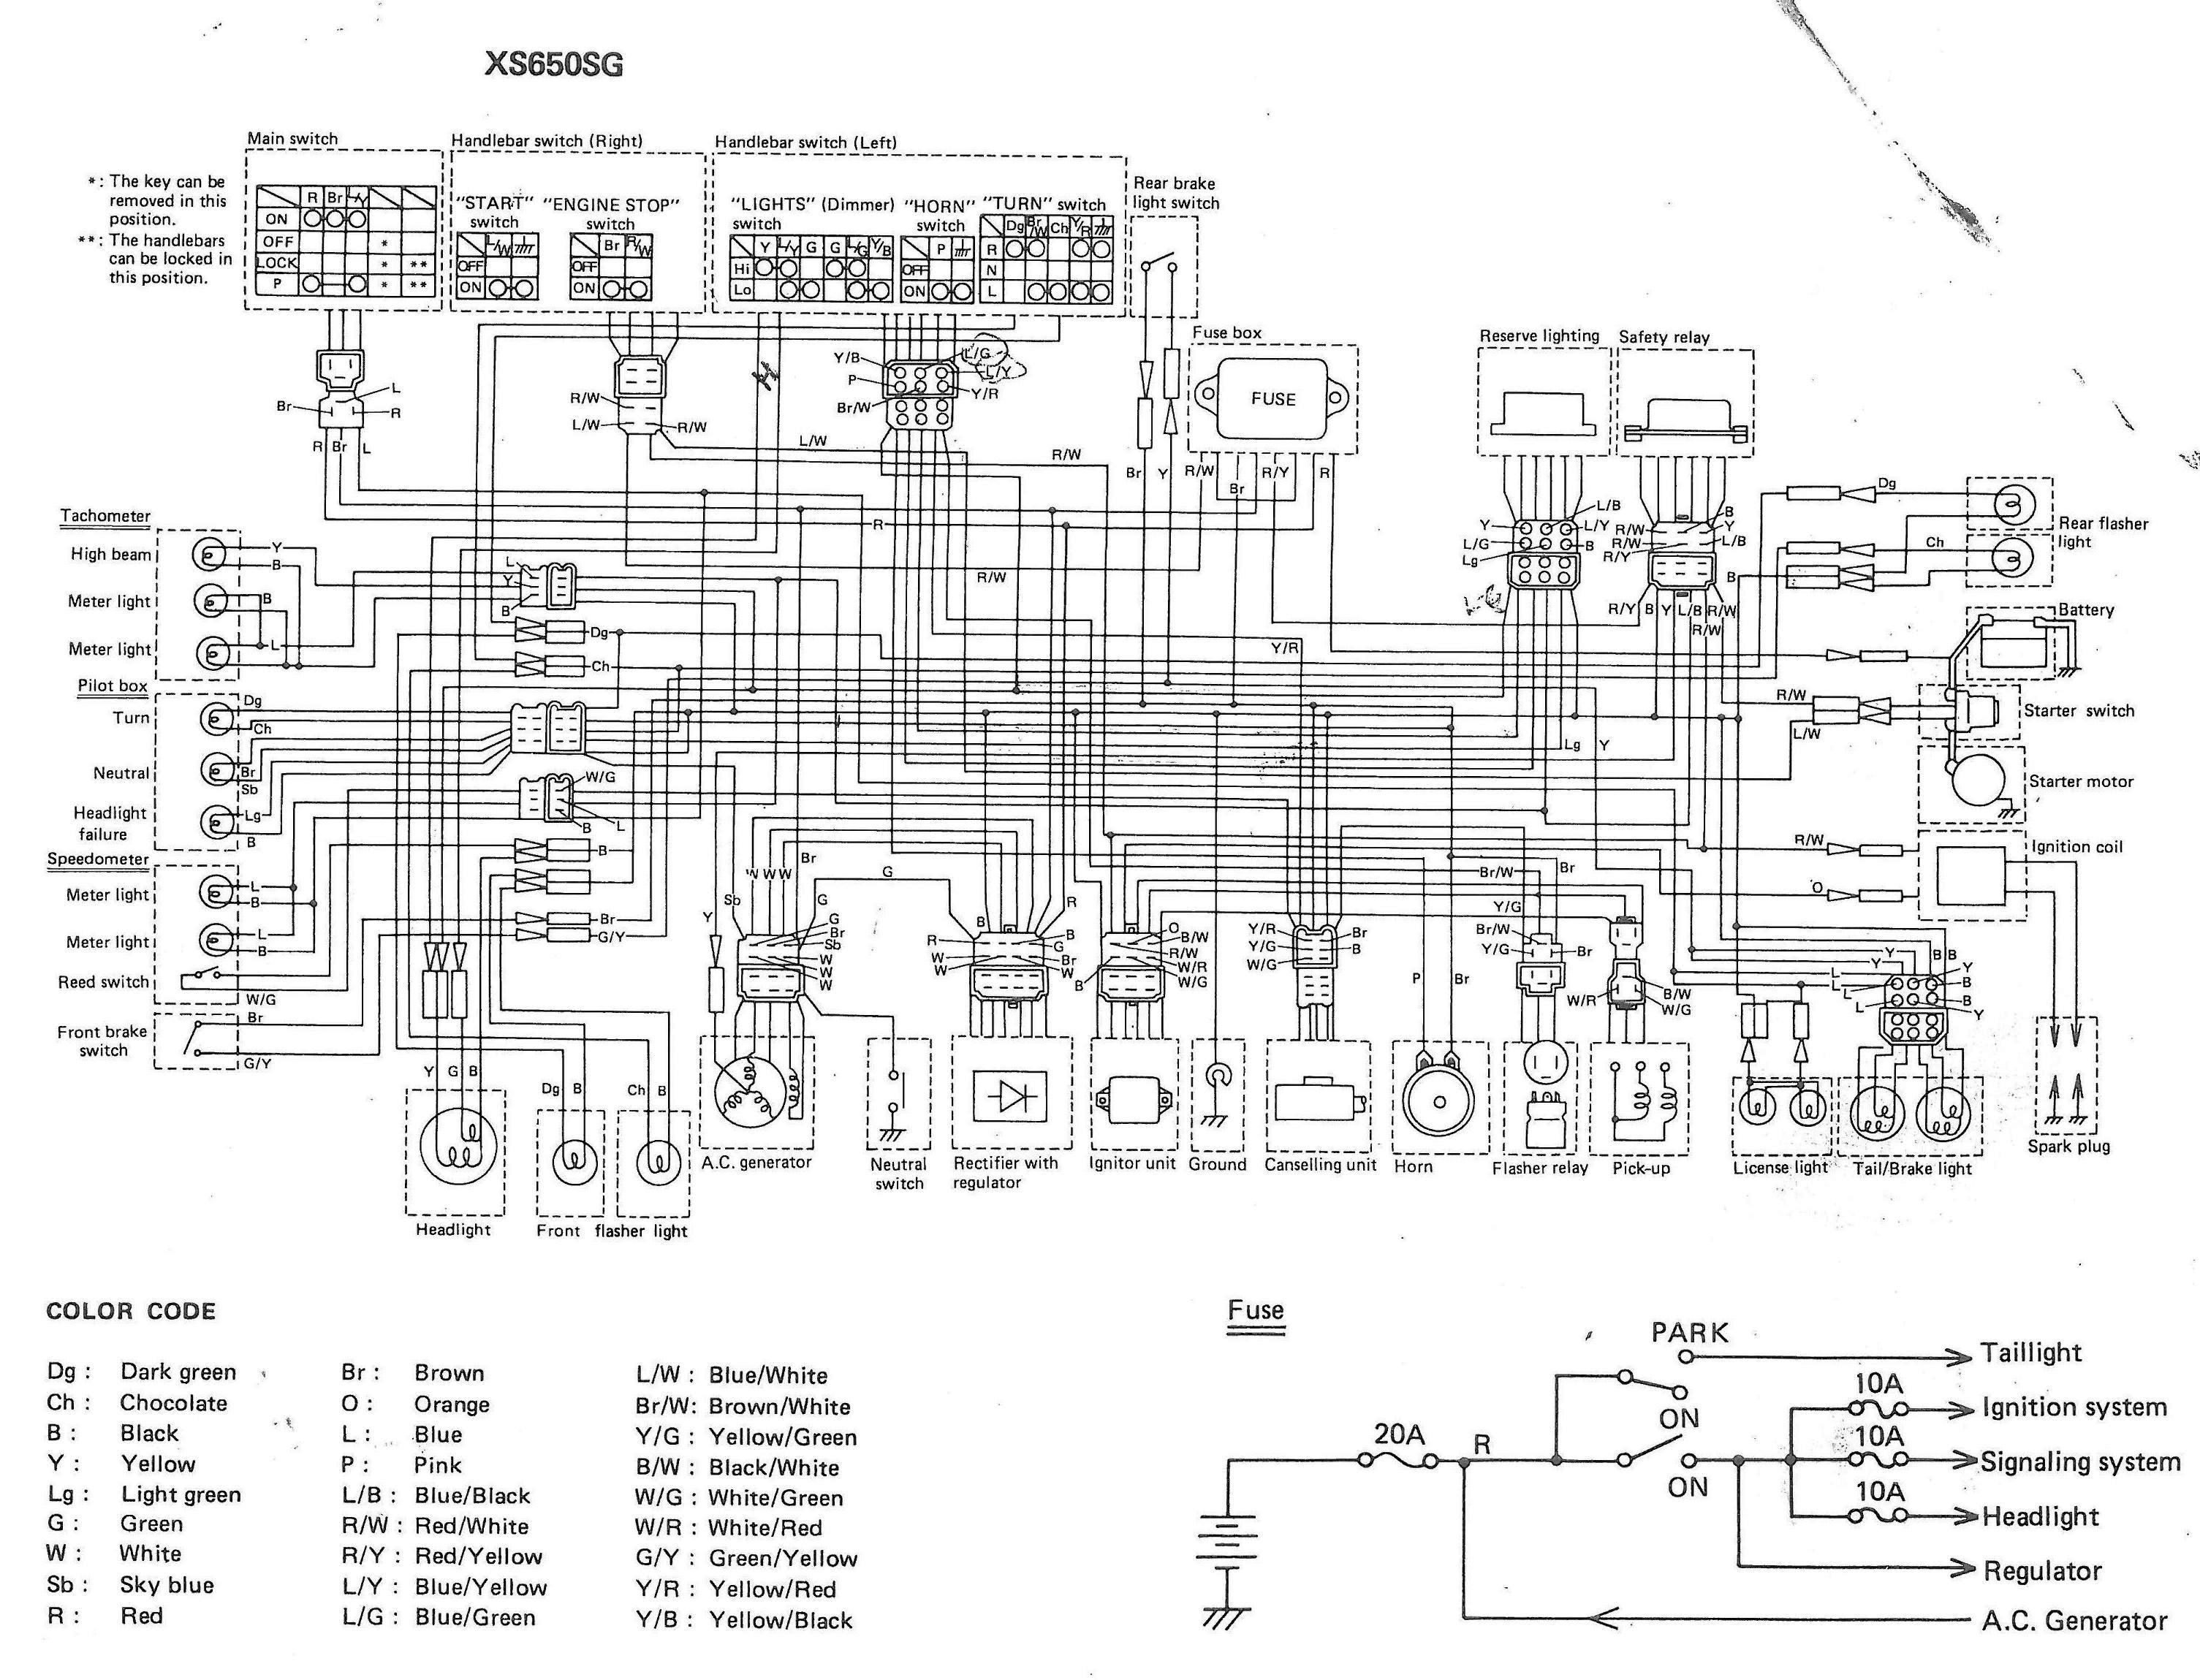 80 xs650sg 1 elec diagram thexscafe 1980 xs650 wiring diagram at readyjetset.co